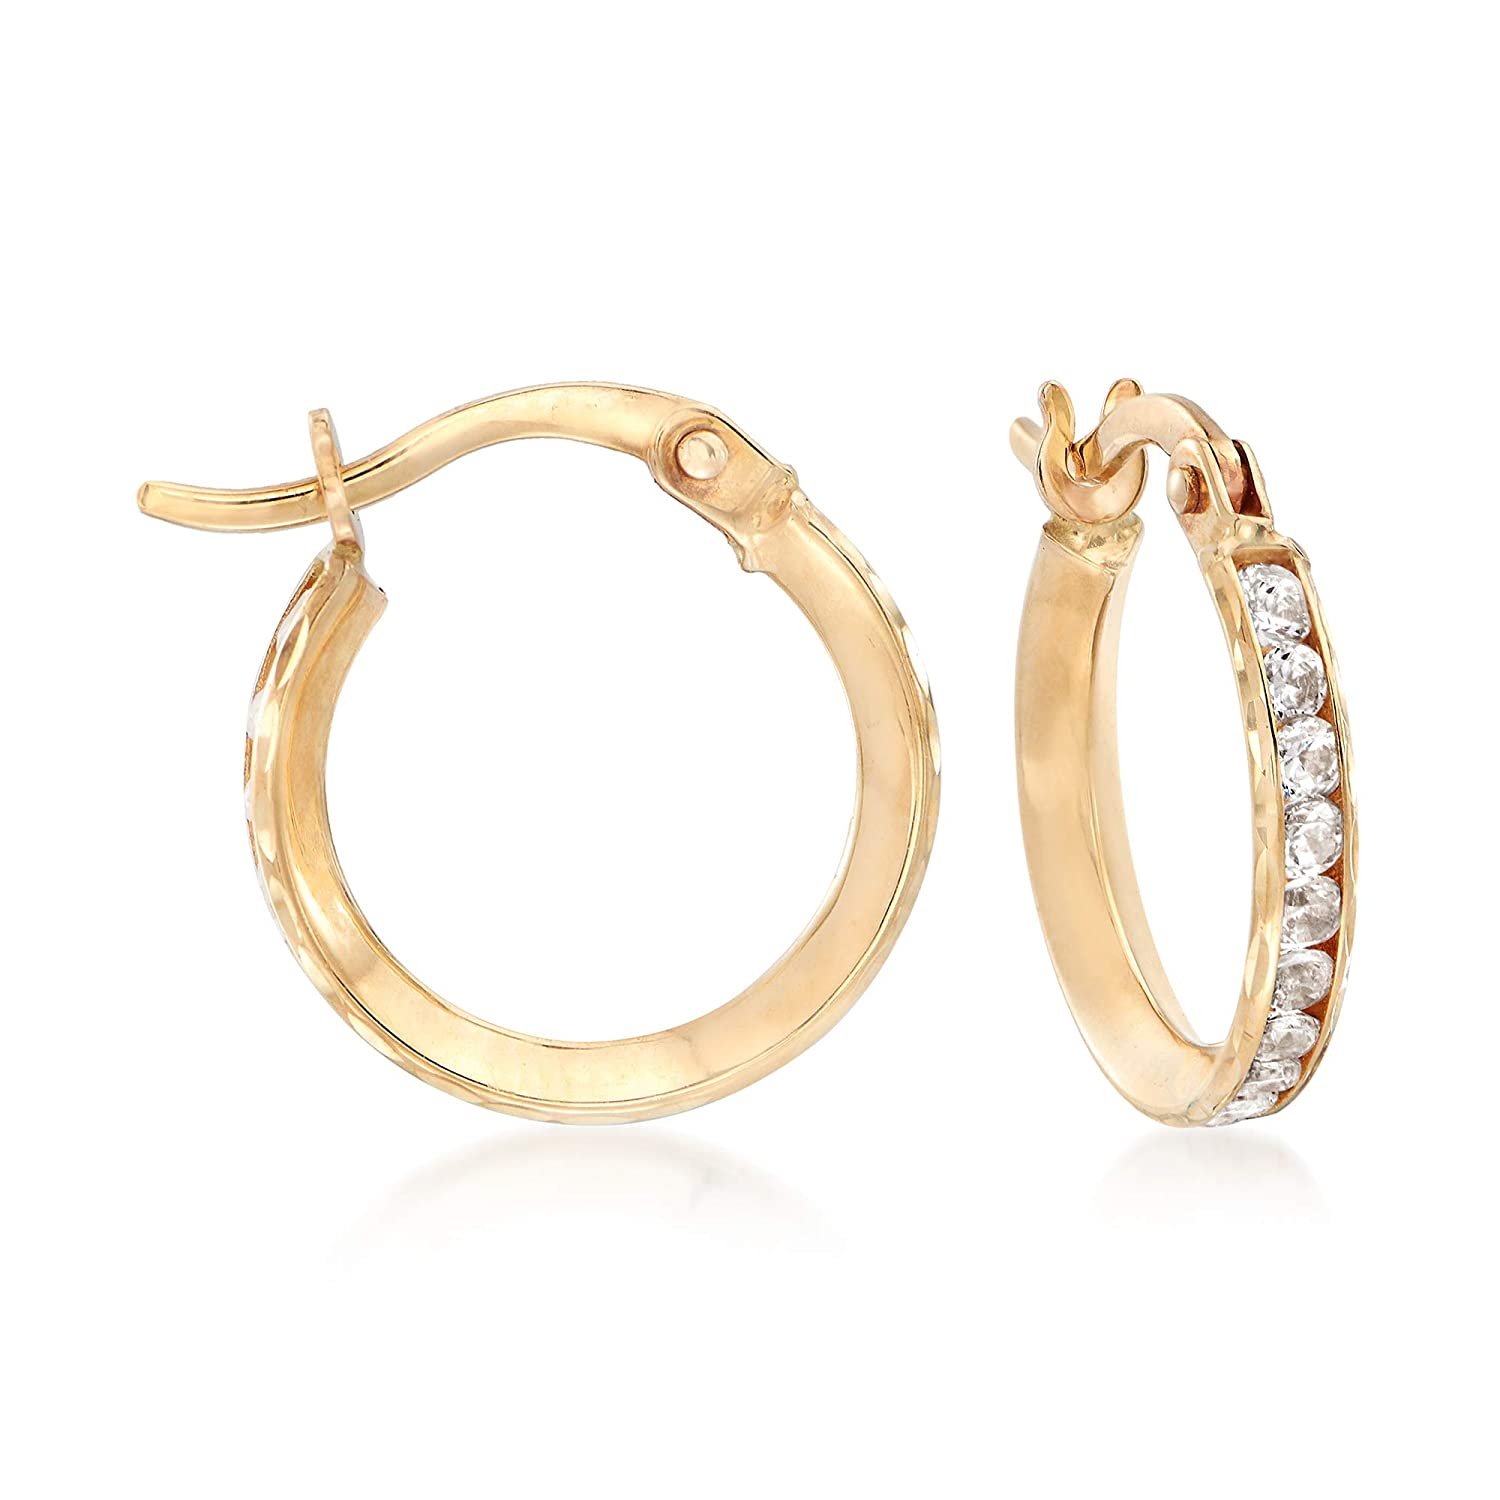 t.w CZ Hoop Earring Set Of 2 in 14kt Yellow Gold 3//8-1//2 Ross-Simons Mom /& Me 1.15 ct